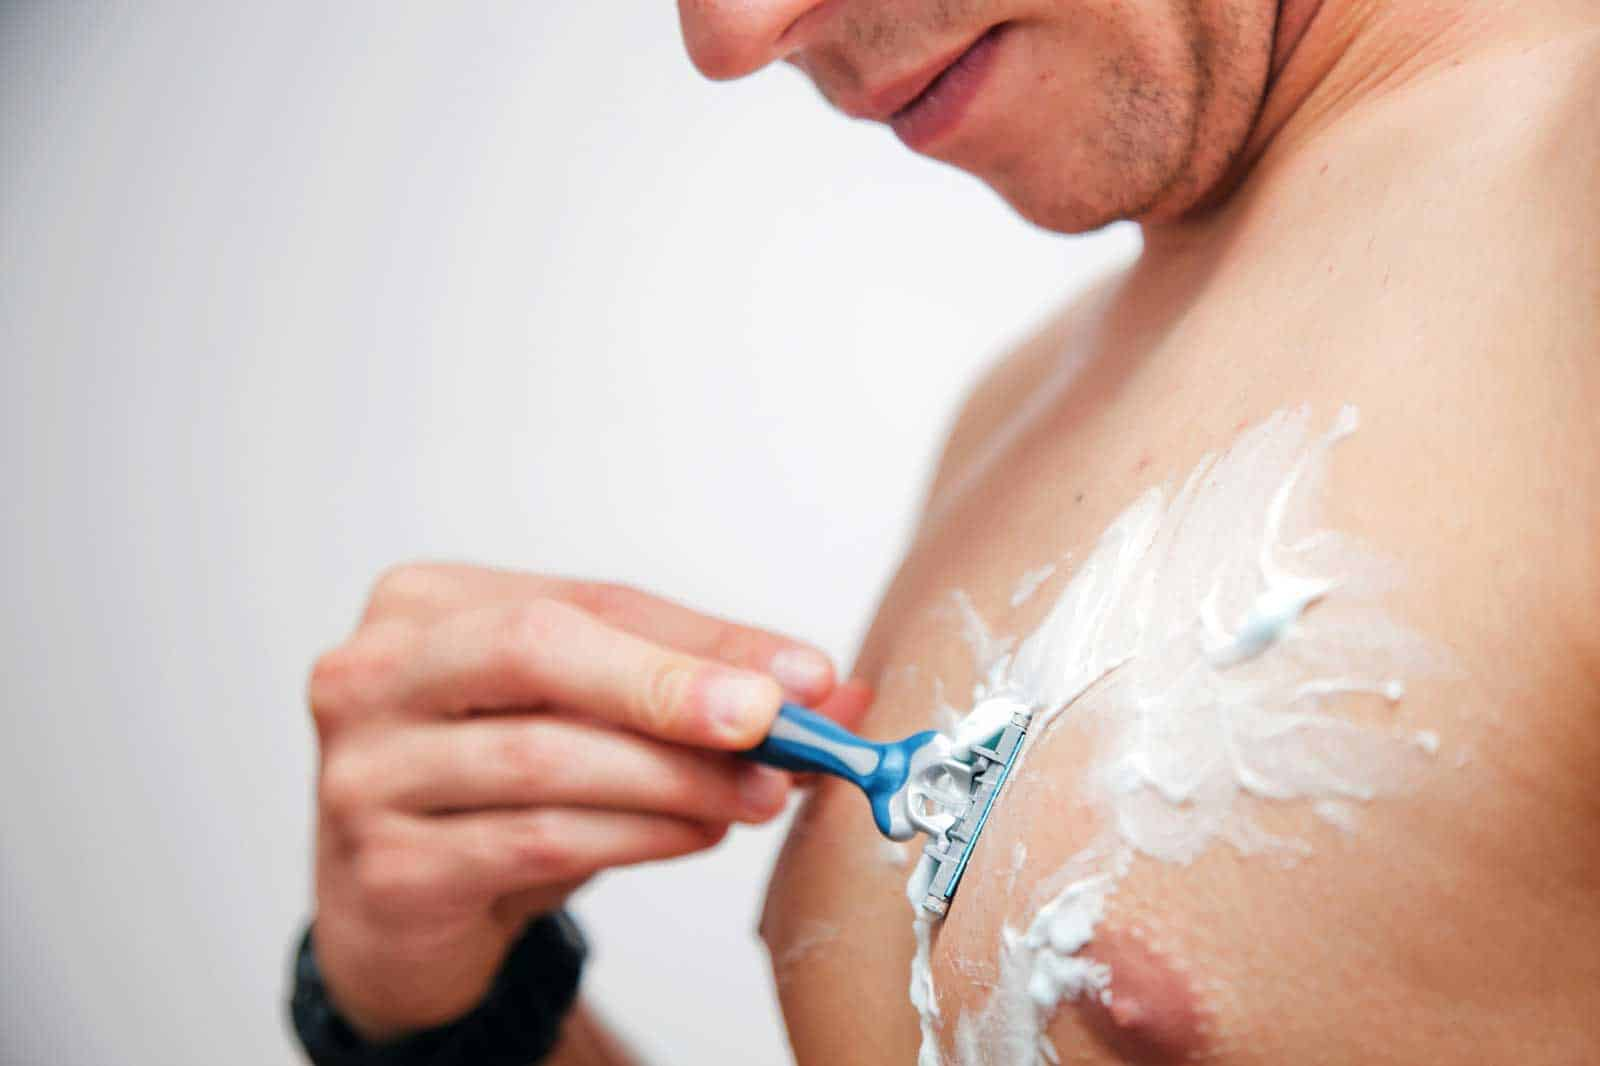 How to remove chest hair